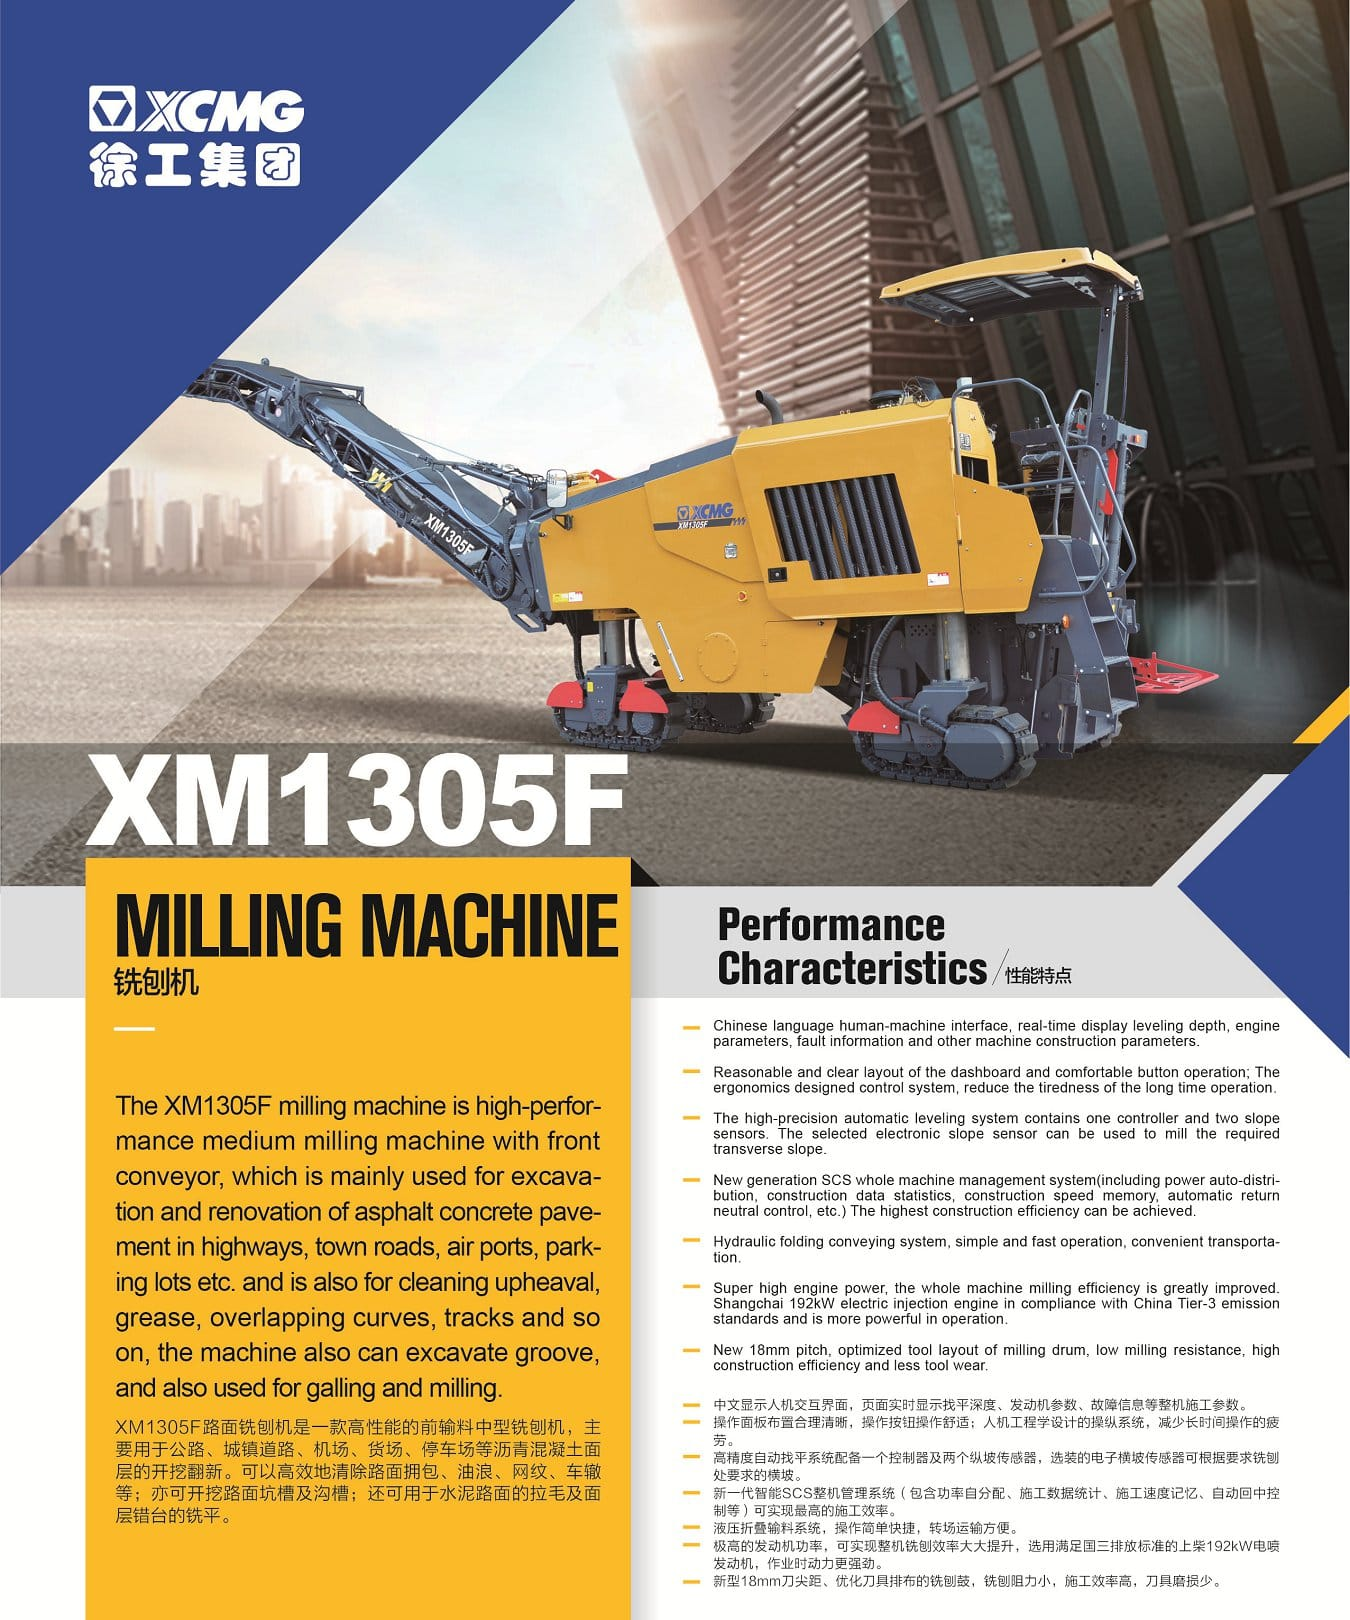 XCMG Official XM1305F Road Milling Machine for sale